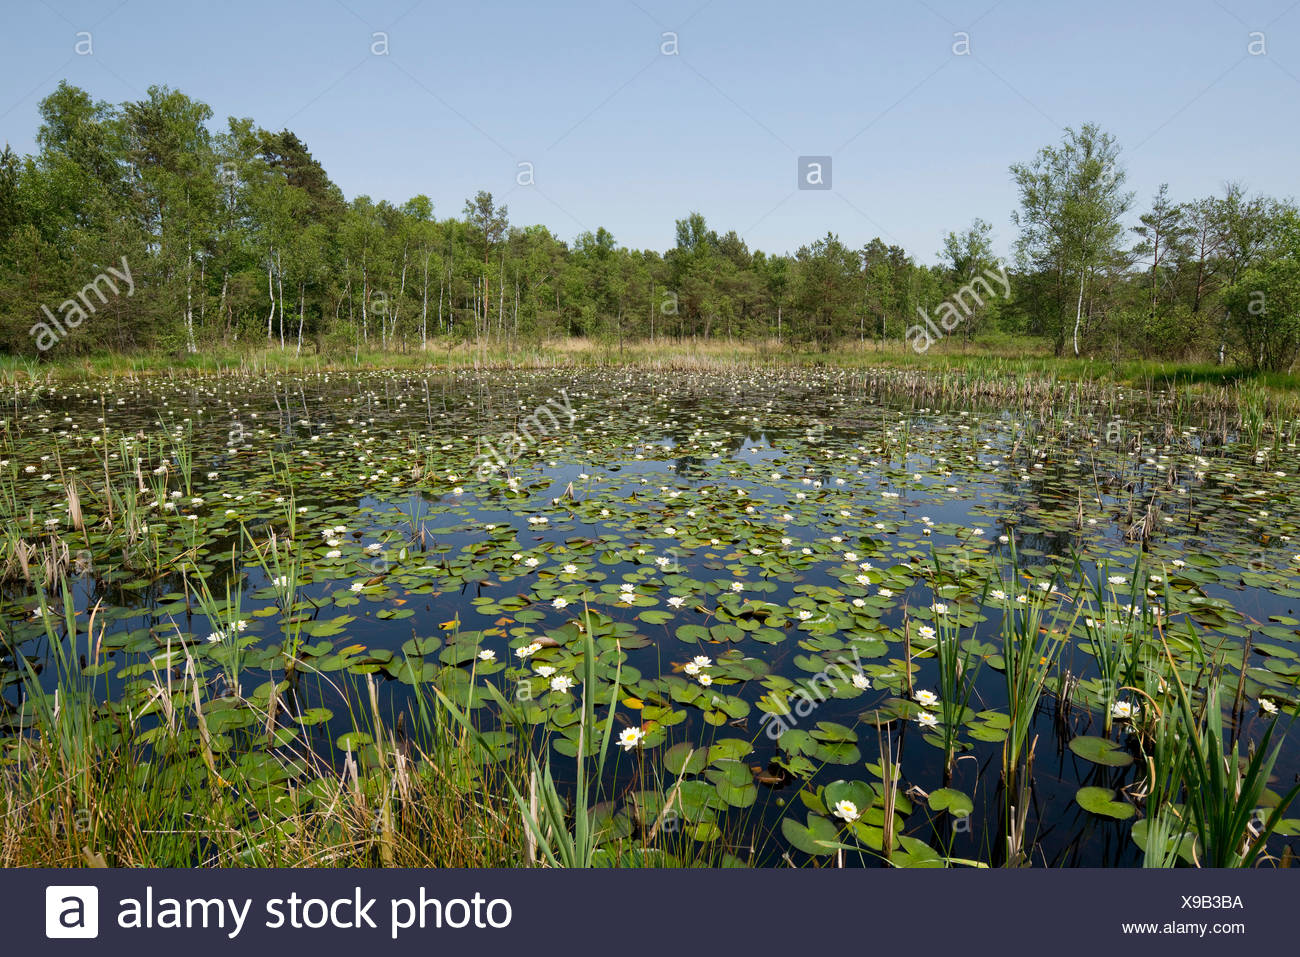 Pond with White Water Lilies (Nymphaea alba), Breites Moor, near Celle, Lower Saxony, Germany - Stock Image